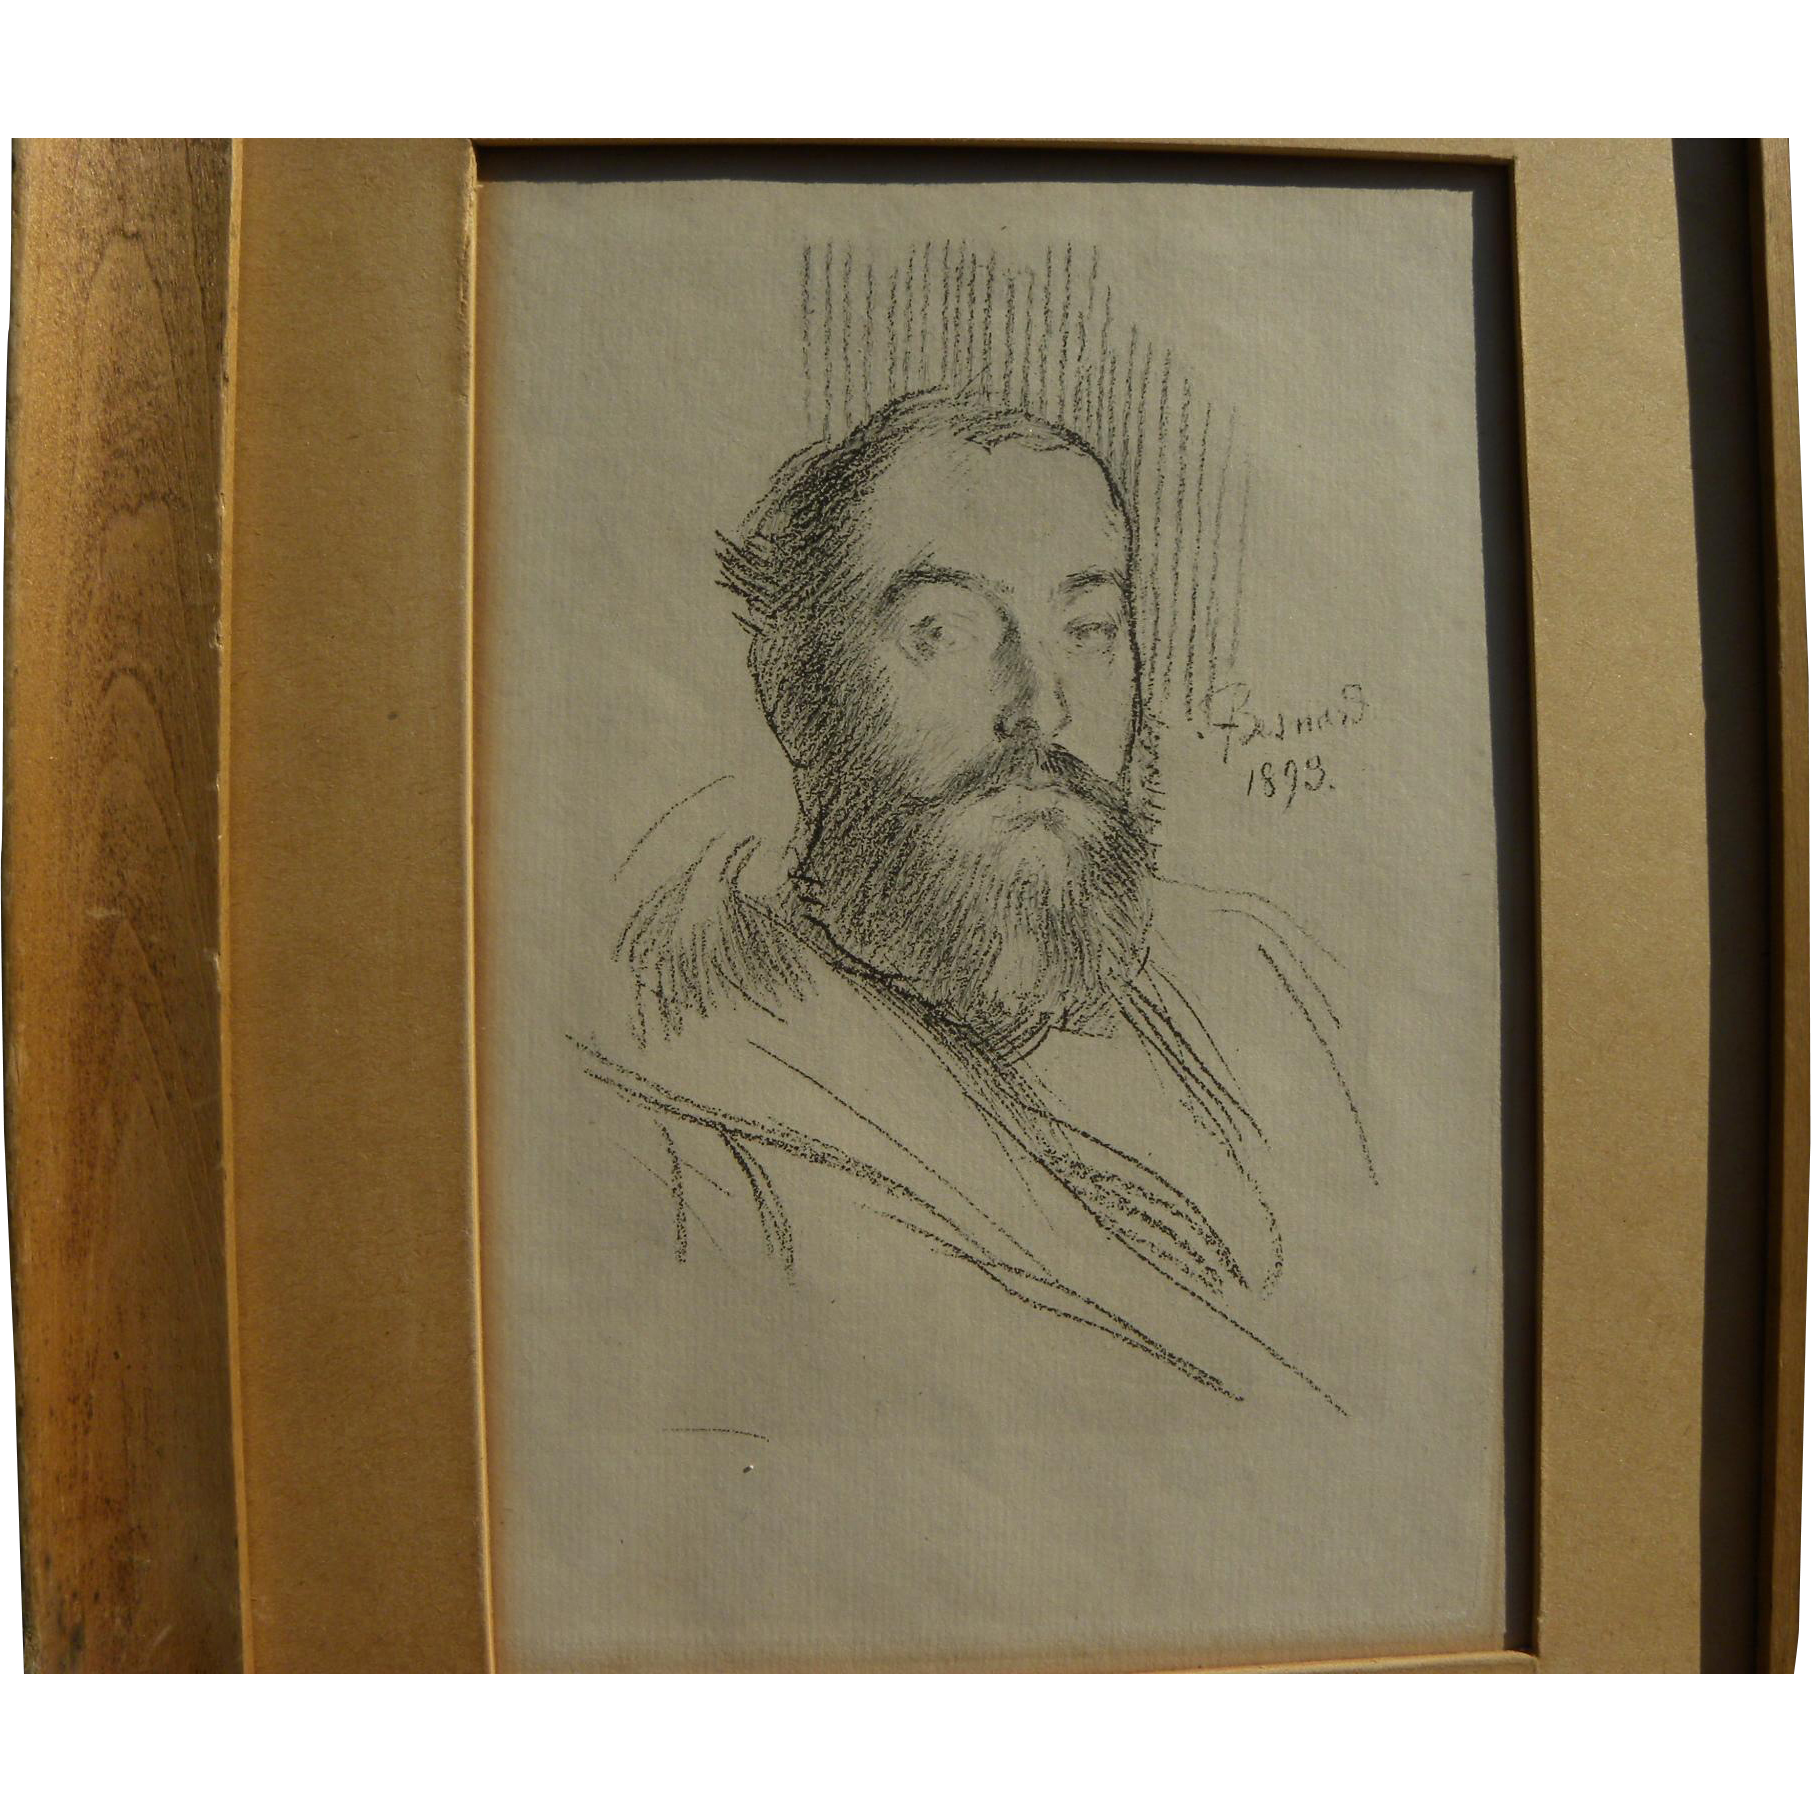 PAUL-ALBERT BESNARD (1849-1934) scarce lithograph self-portrait of the artist dated 1893